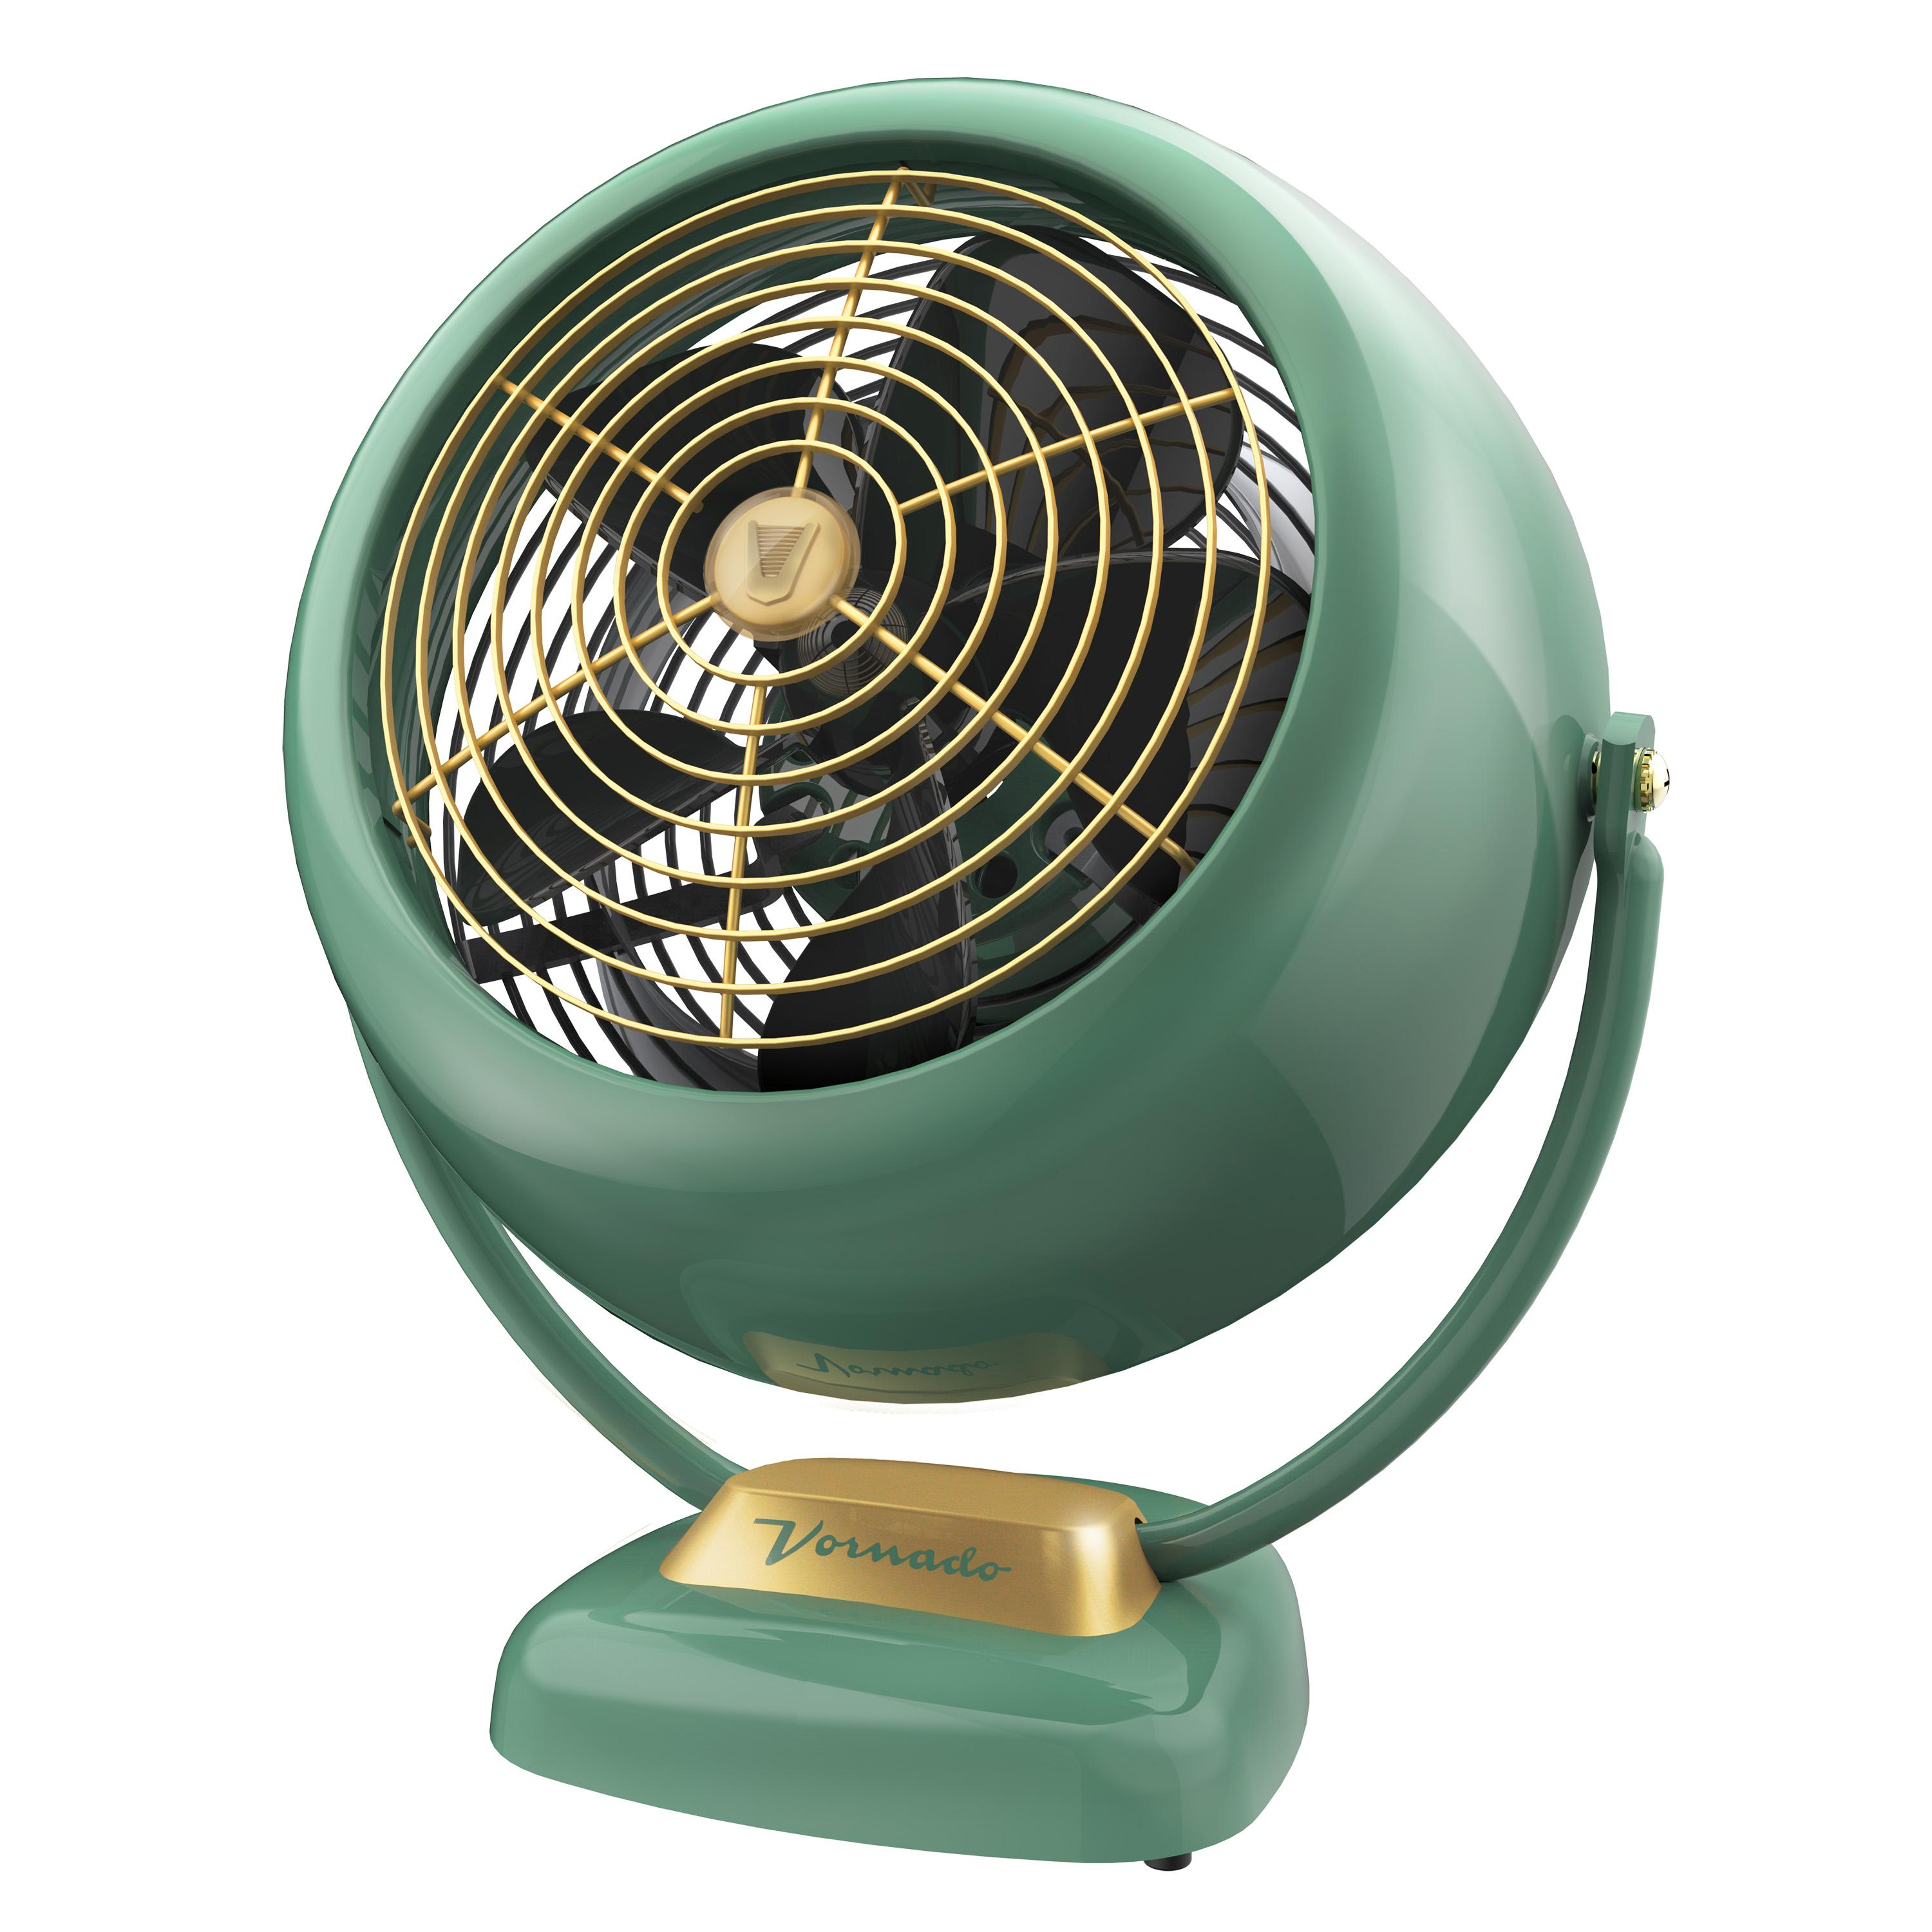 Hot Air Circulator : The best affordable fan for cooling your home this hot